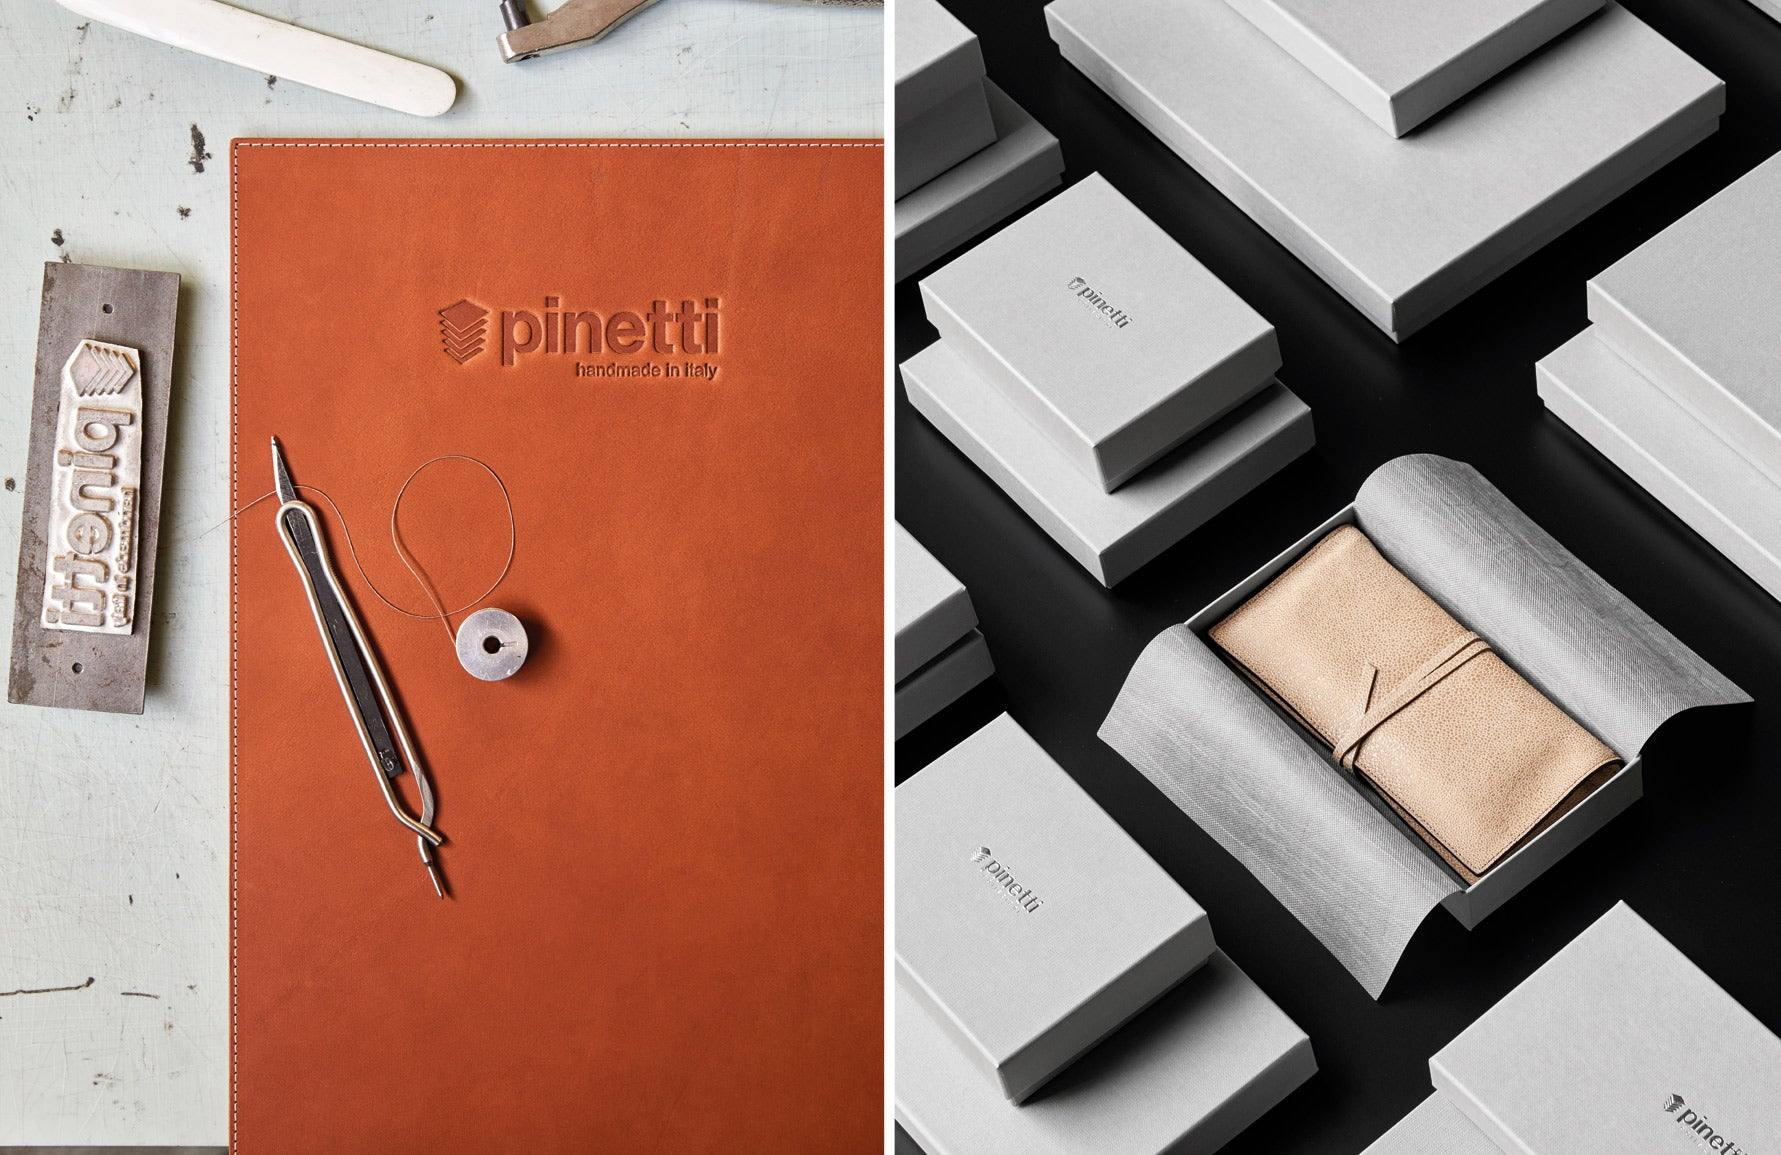 Behind The Brand | Pinetti | Fine Leather Goods | Read more in The Luxurist at LuxDeco.com